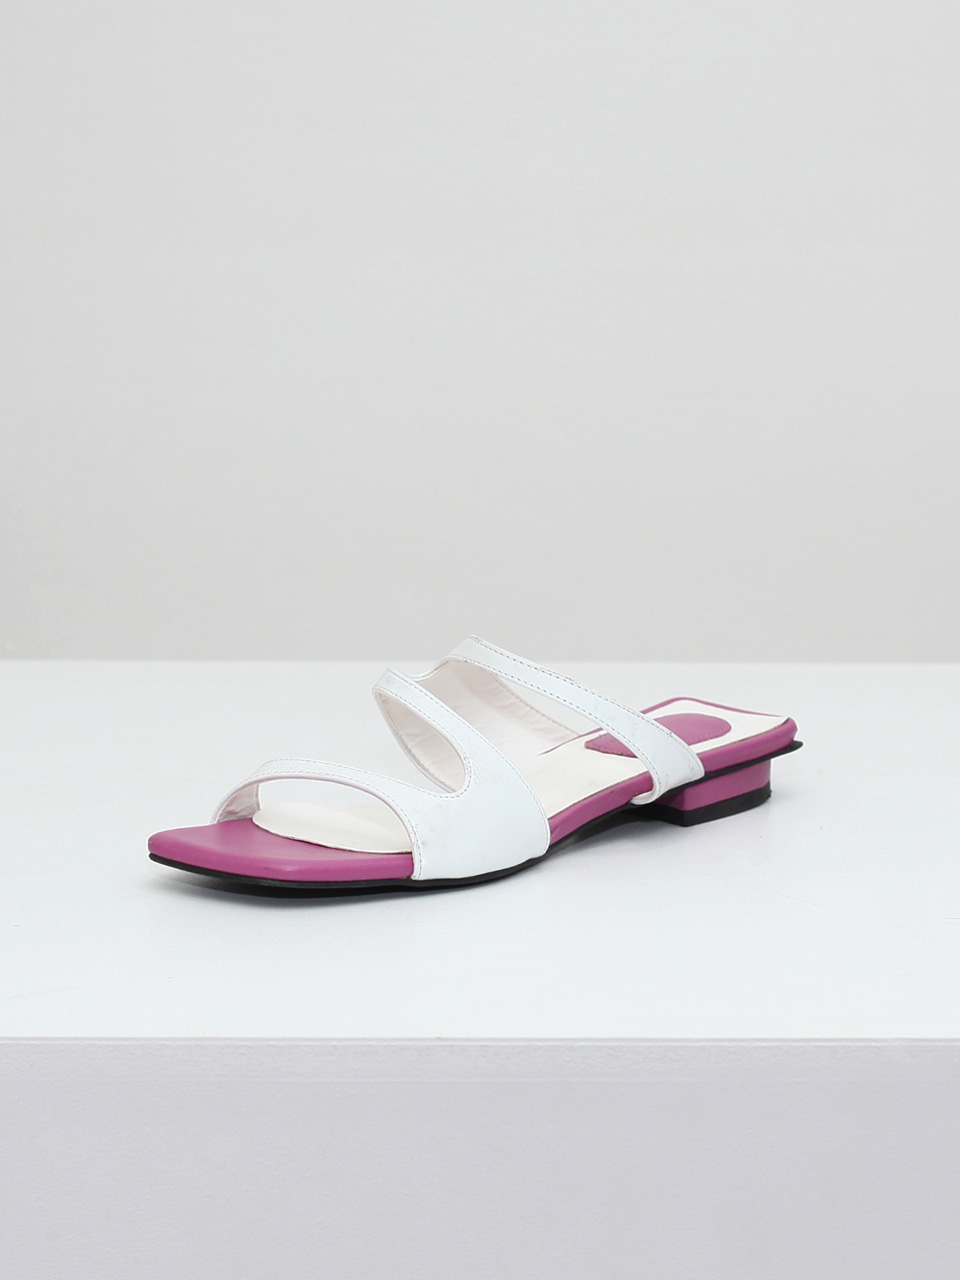 Mrc035 Resort Sandal Flat (White)